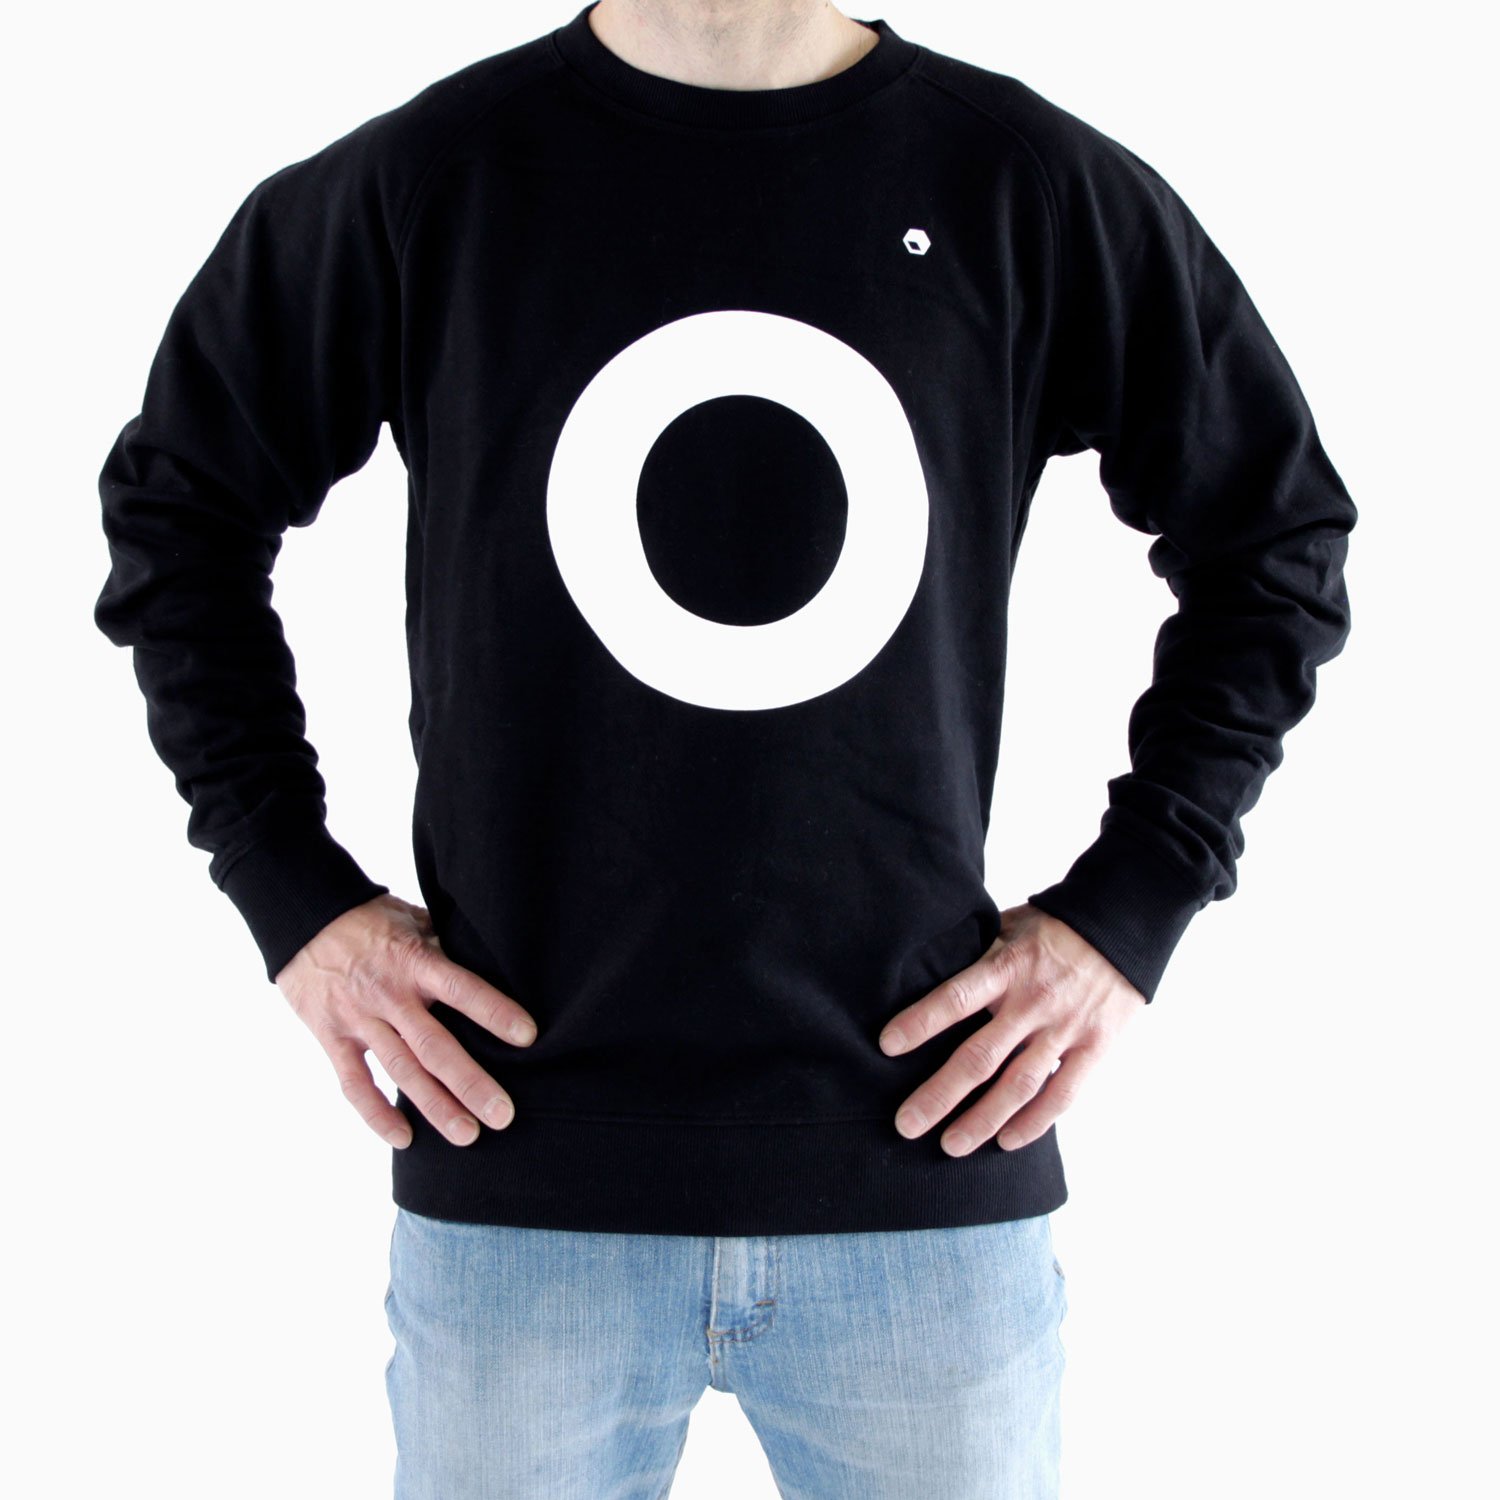 Flathold-apparel-sweat-o-black